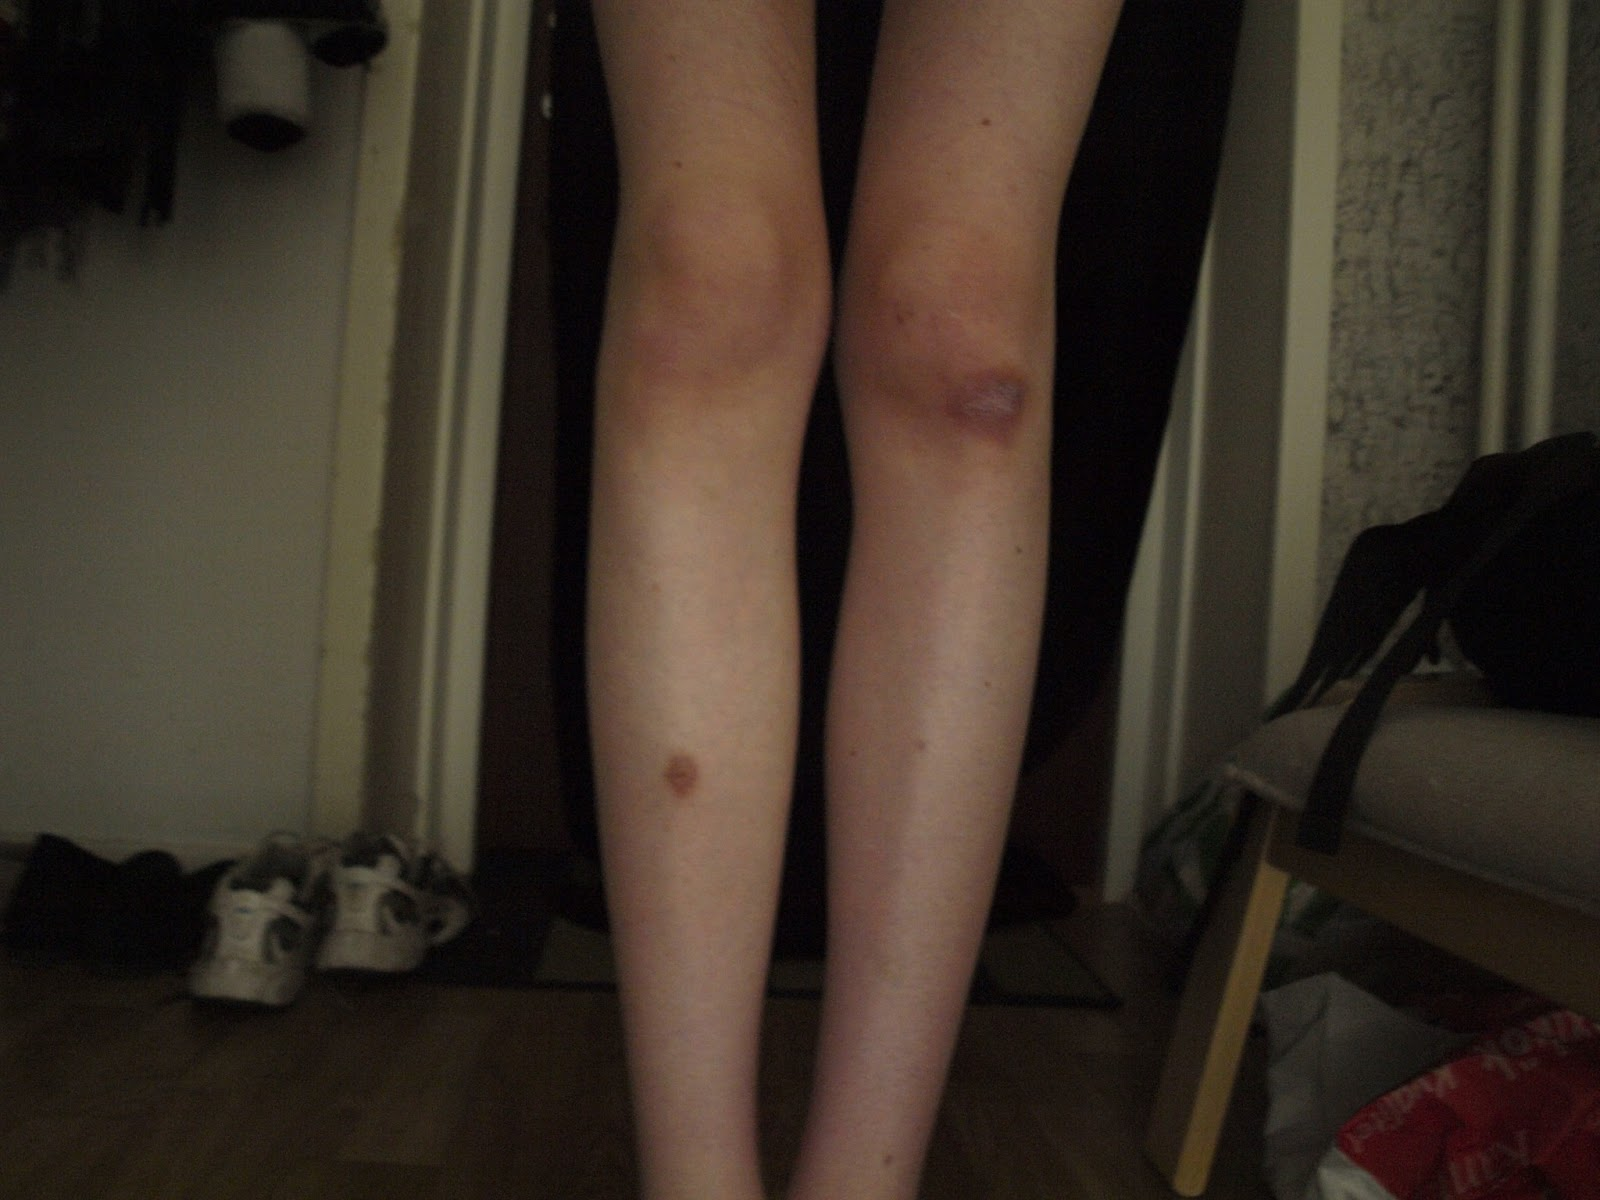 A Life without Anorexia  Love your legs